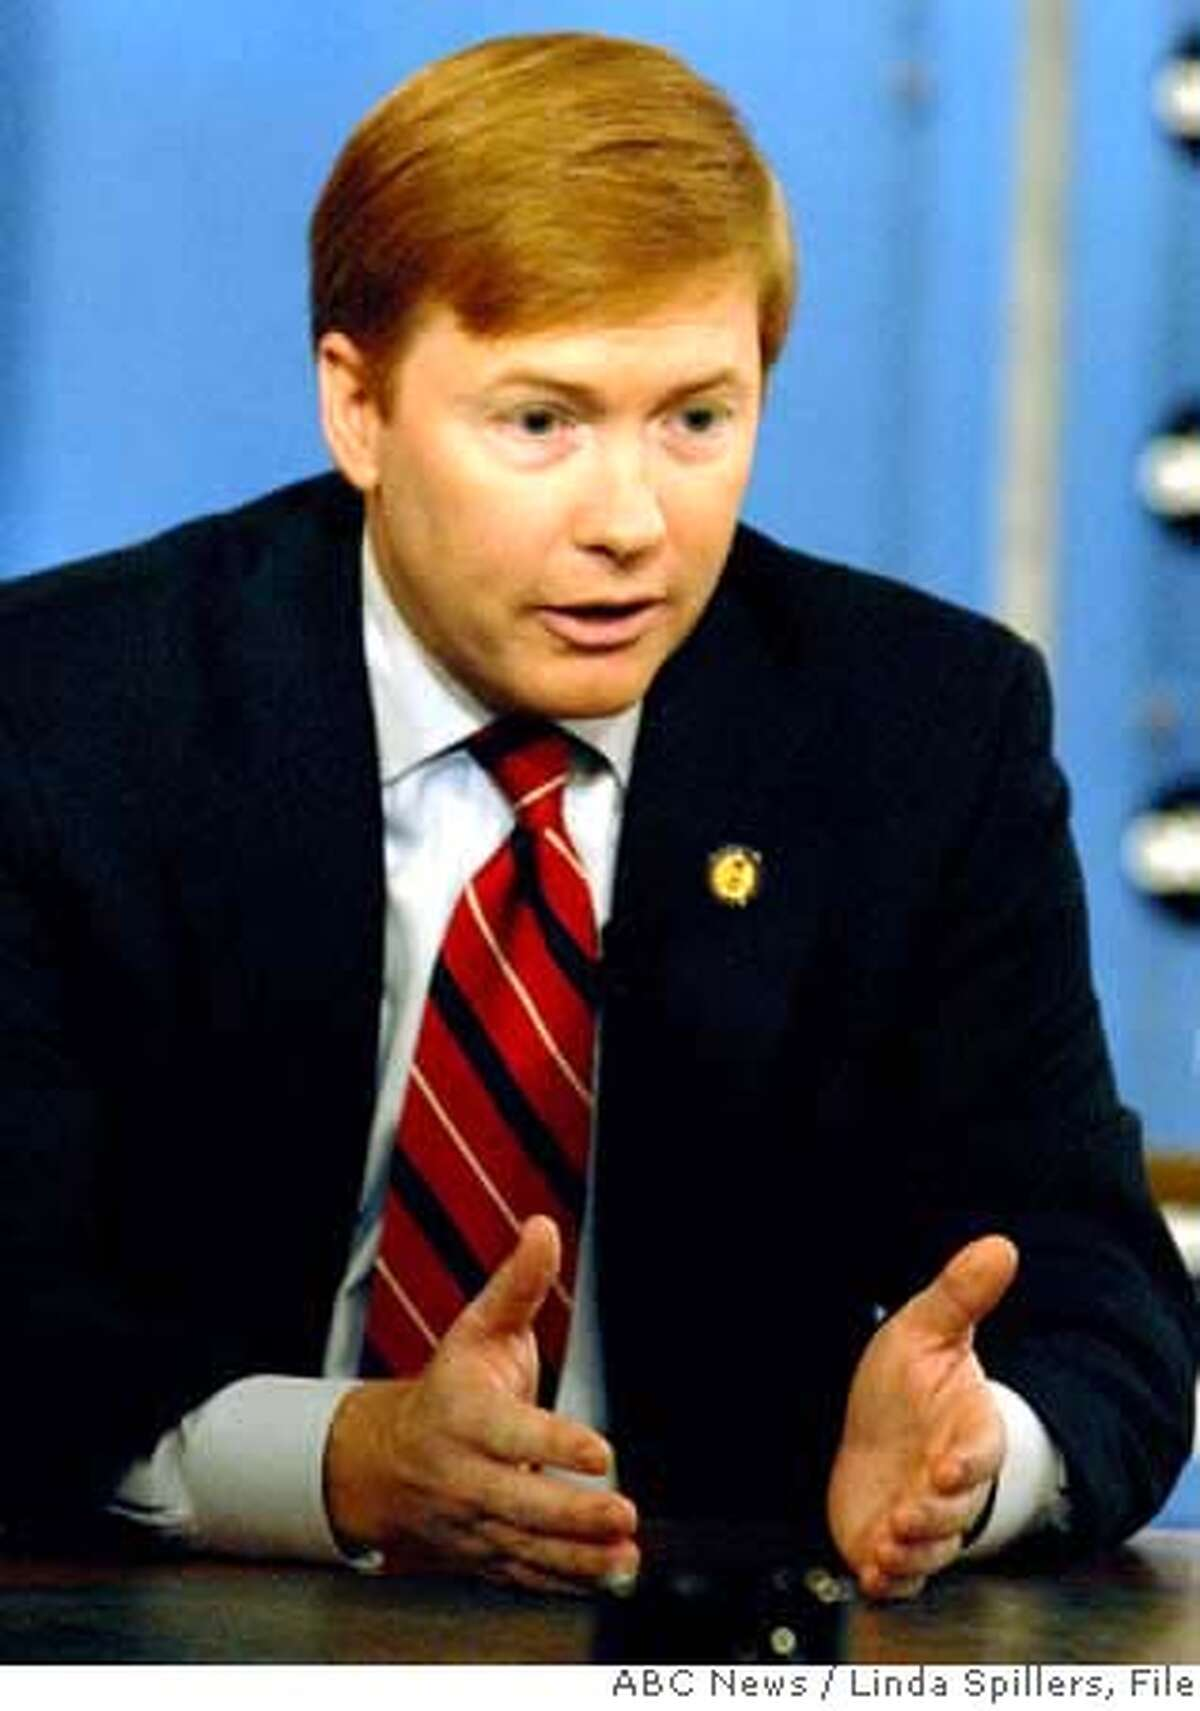 In this photo provided by ABC News, Rep.Adam Putnam, R-Fla., appears for an interview with George Stephanopolous on ABC's This Week, in Washington, Sunday, Oct. 8, 2006. (AP Photo/ABC News, Linda Spillers) **MANDATORY CREDIT LINDA SPILLERS ABC NEWS NO ARCHIVE** PHOTO PROVIDED BY ABC NEWS. MANDATORY CREDIT LINDA SPILLERS ABC NEWS NO ARCHIVE